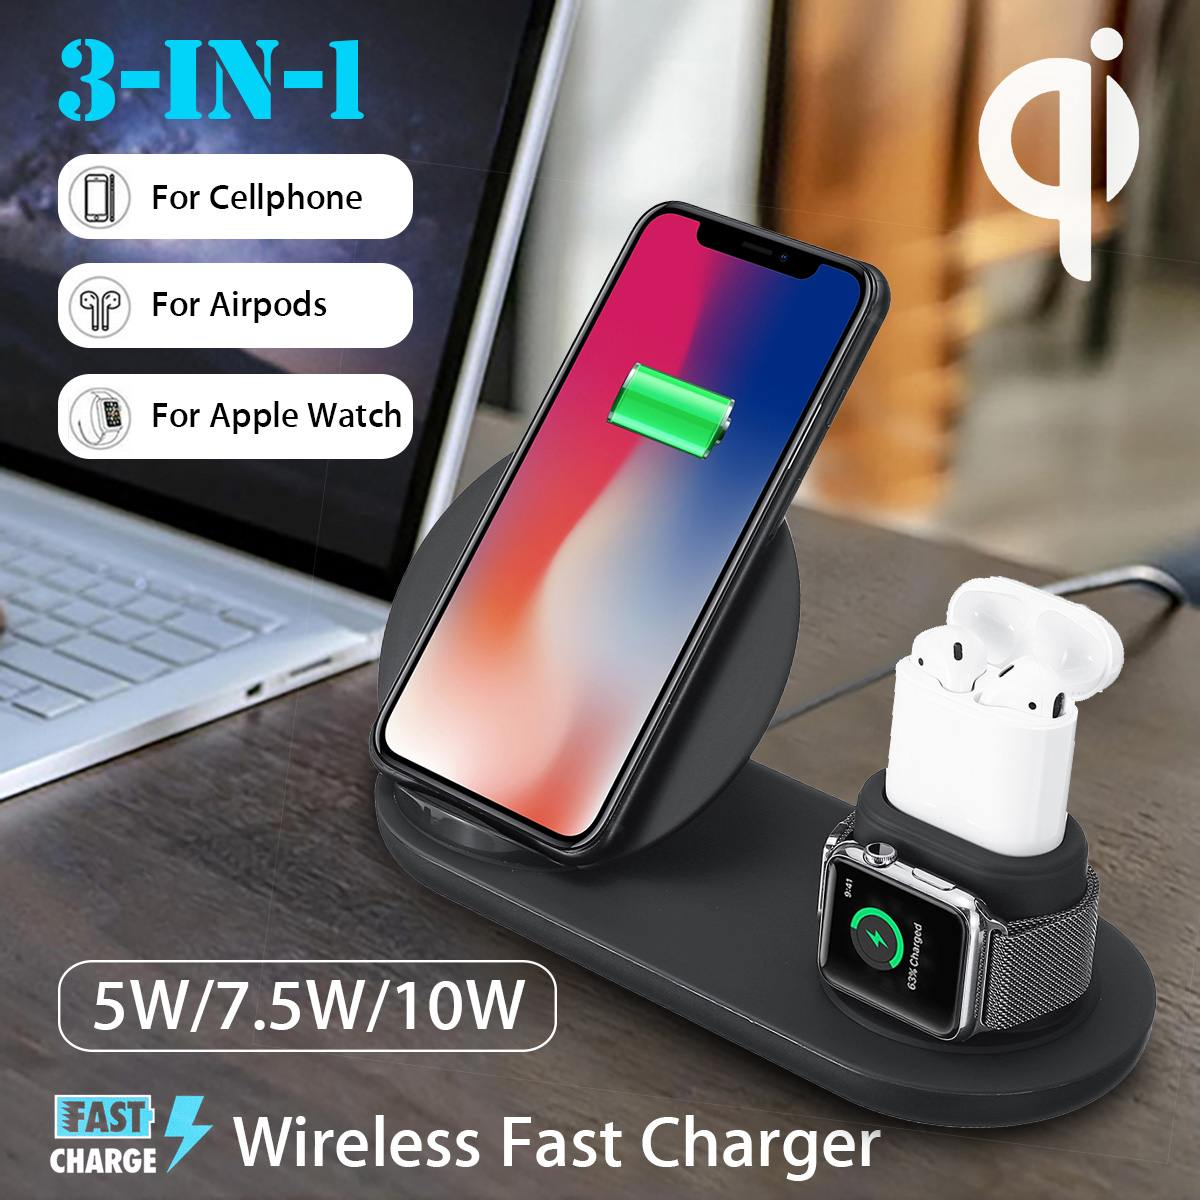 Mobile Phone - 3 in 1 Wireless Charger Dock Station